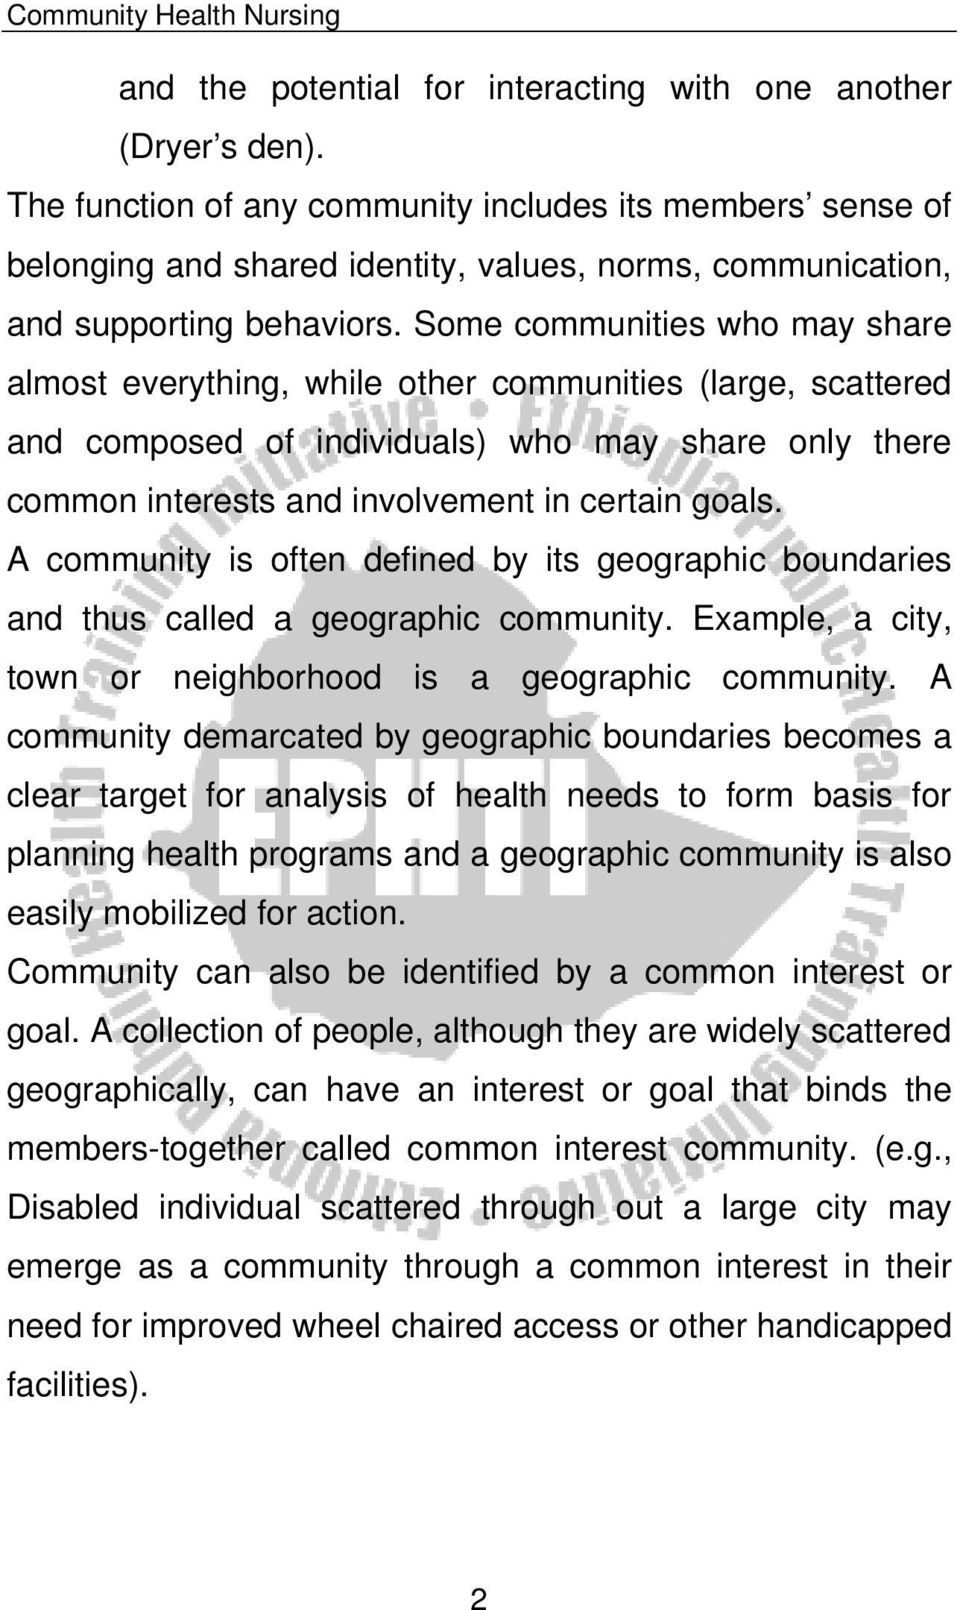 Some communities who may share almost everything, while other communities (large, scattered and composed of individuals) who may share only there common interests and involvement in certain goals.